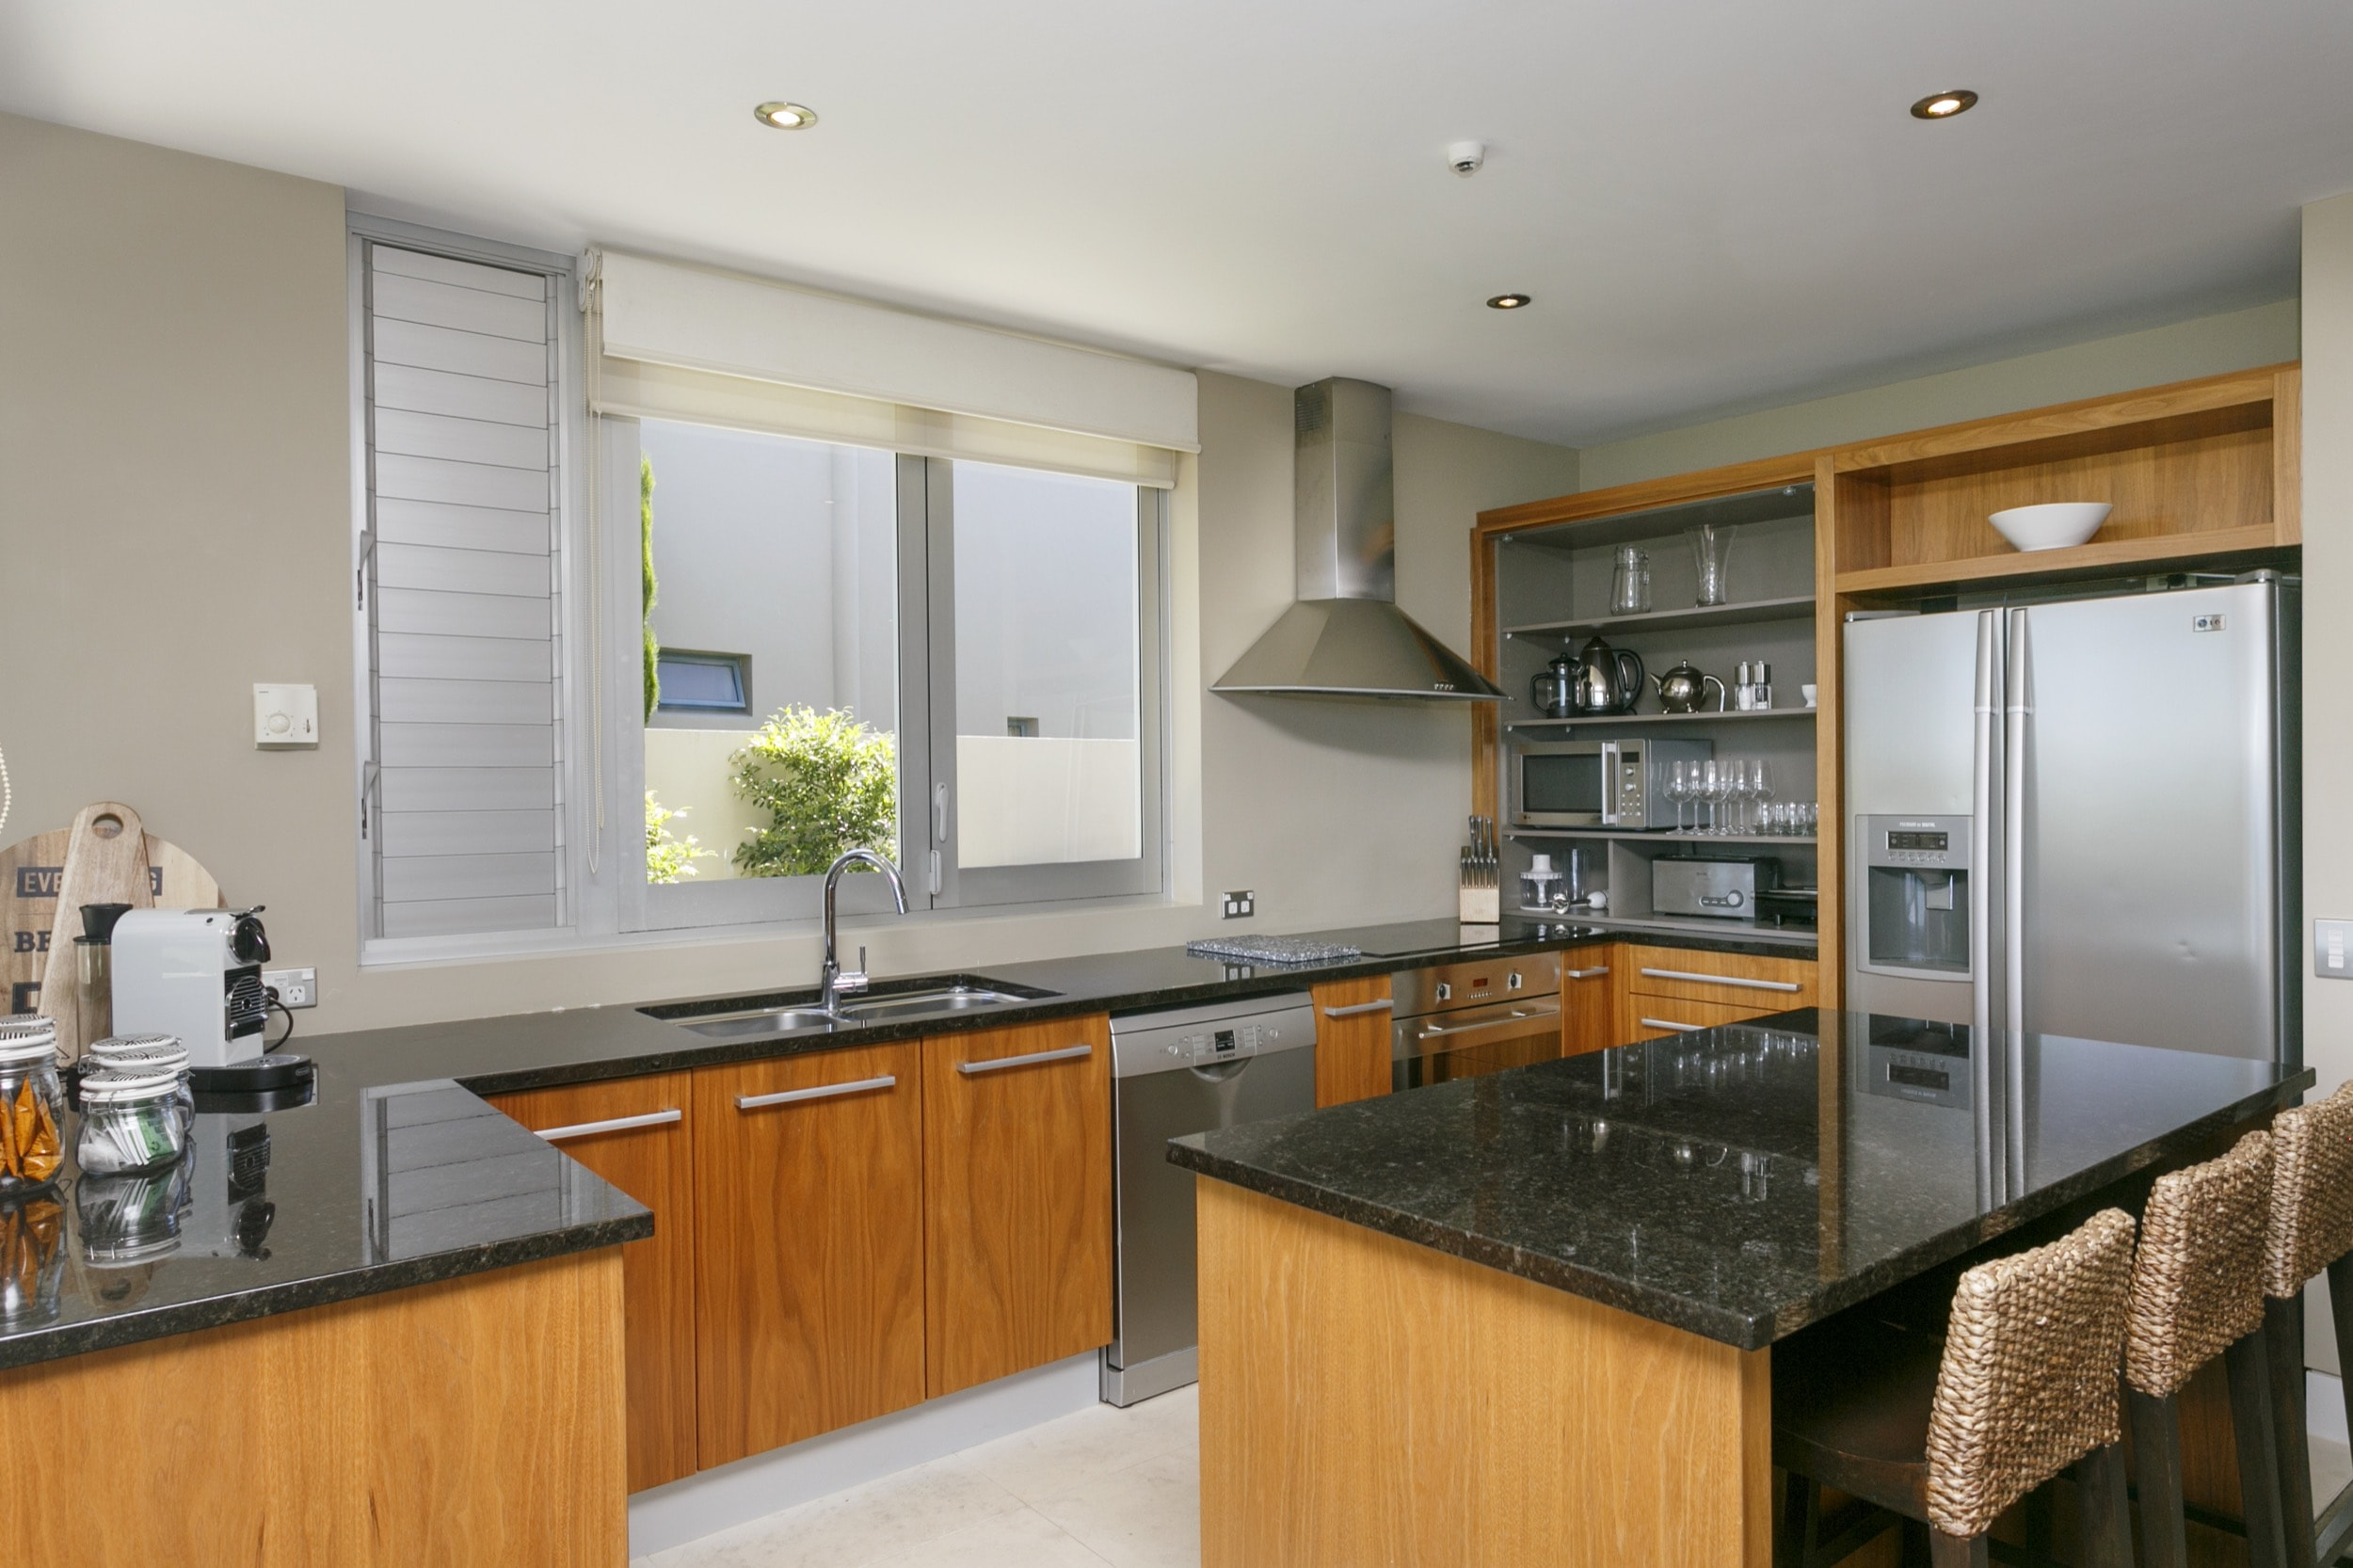 Ground floor two bedroom apartment kitchen 2.jpg